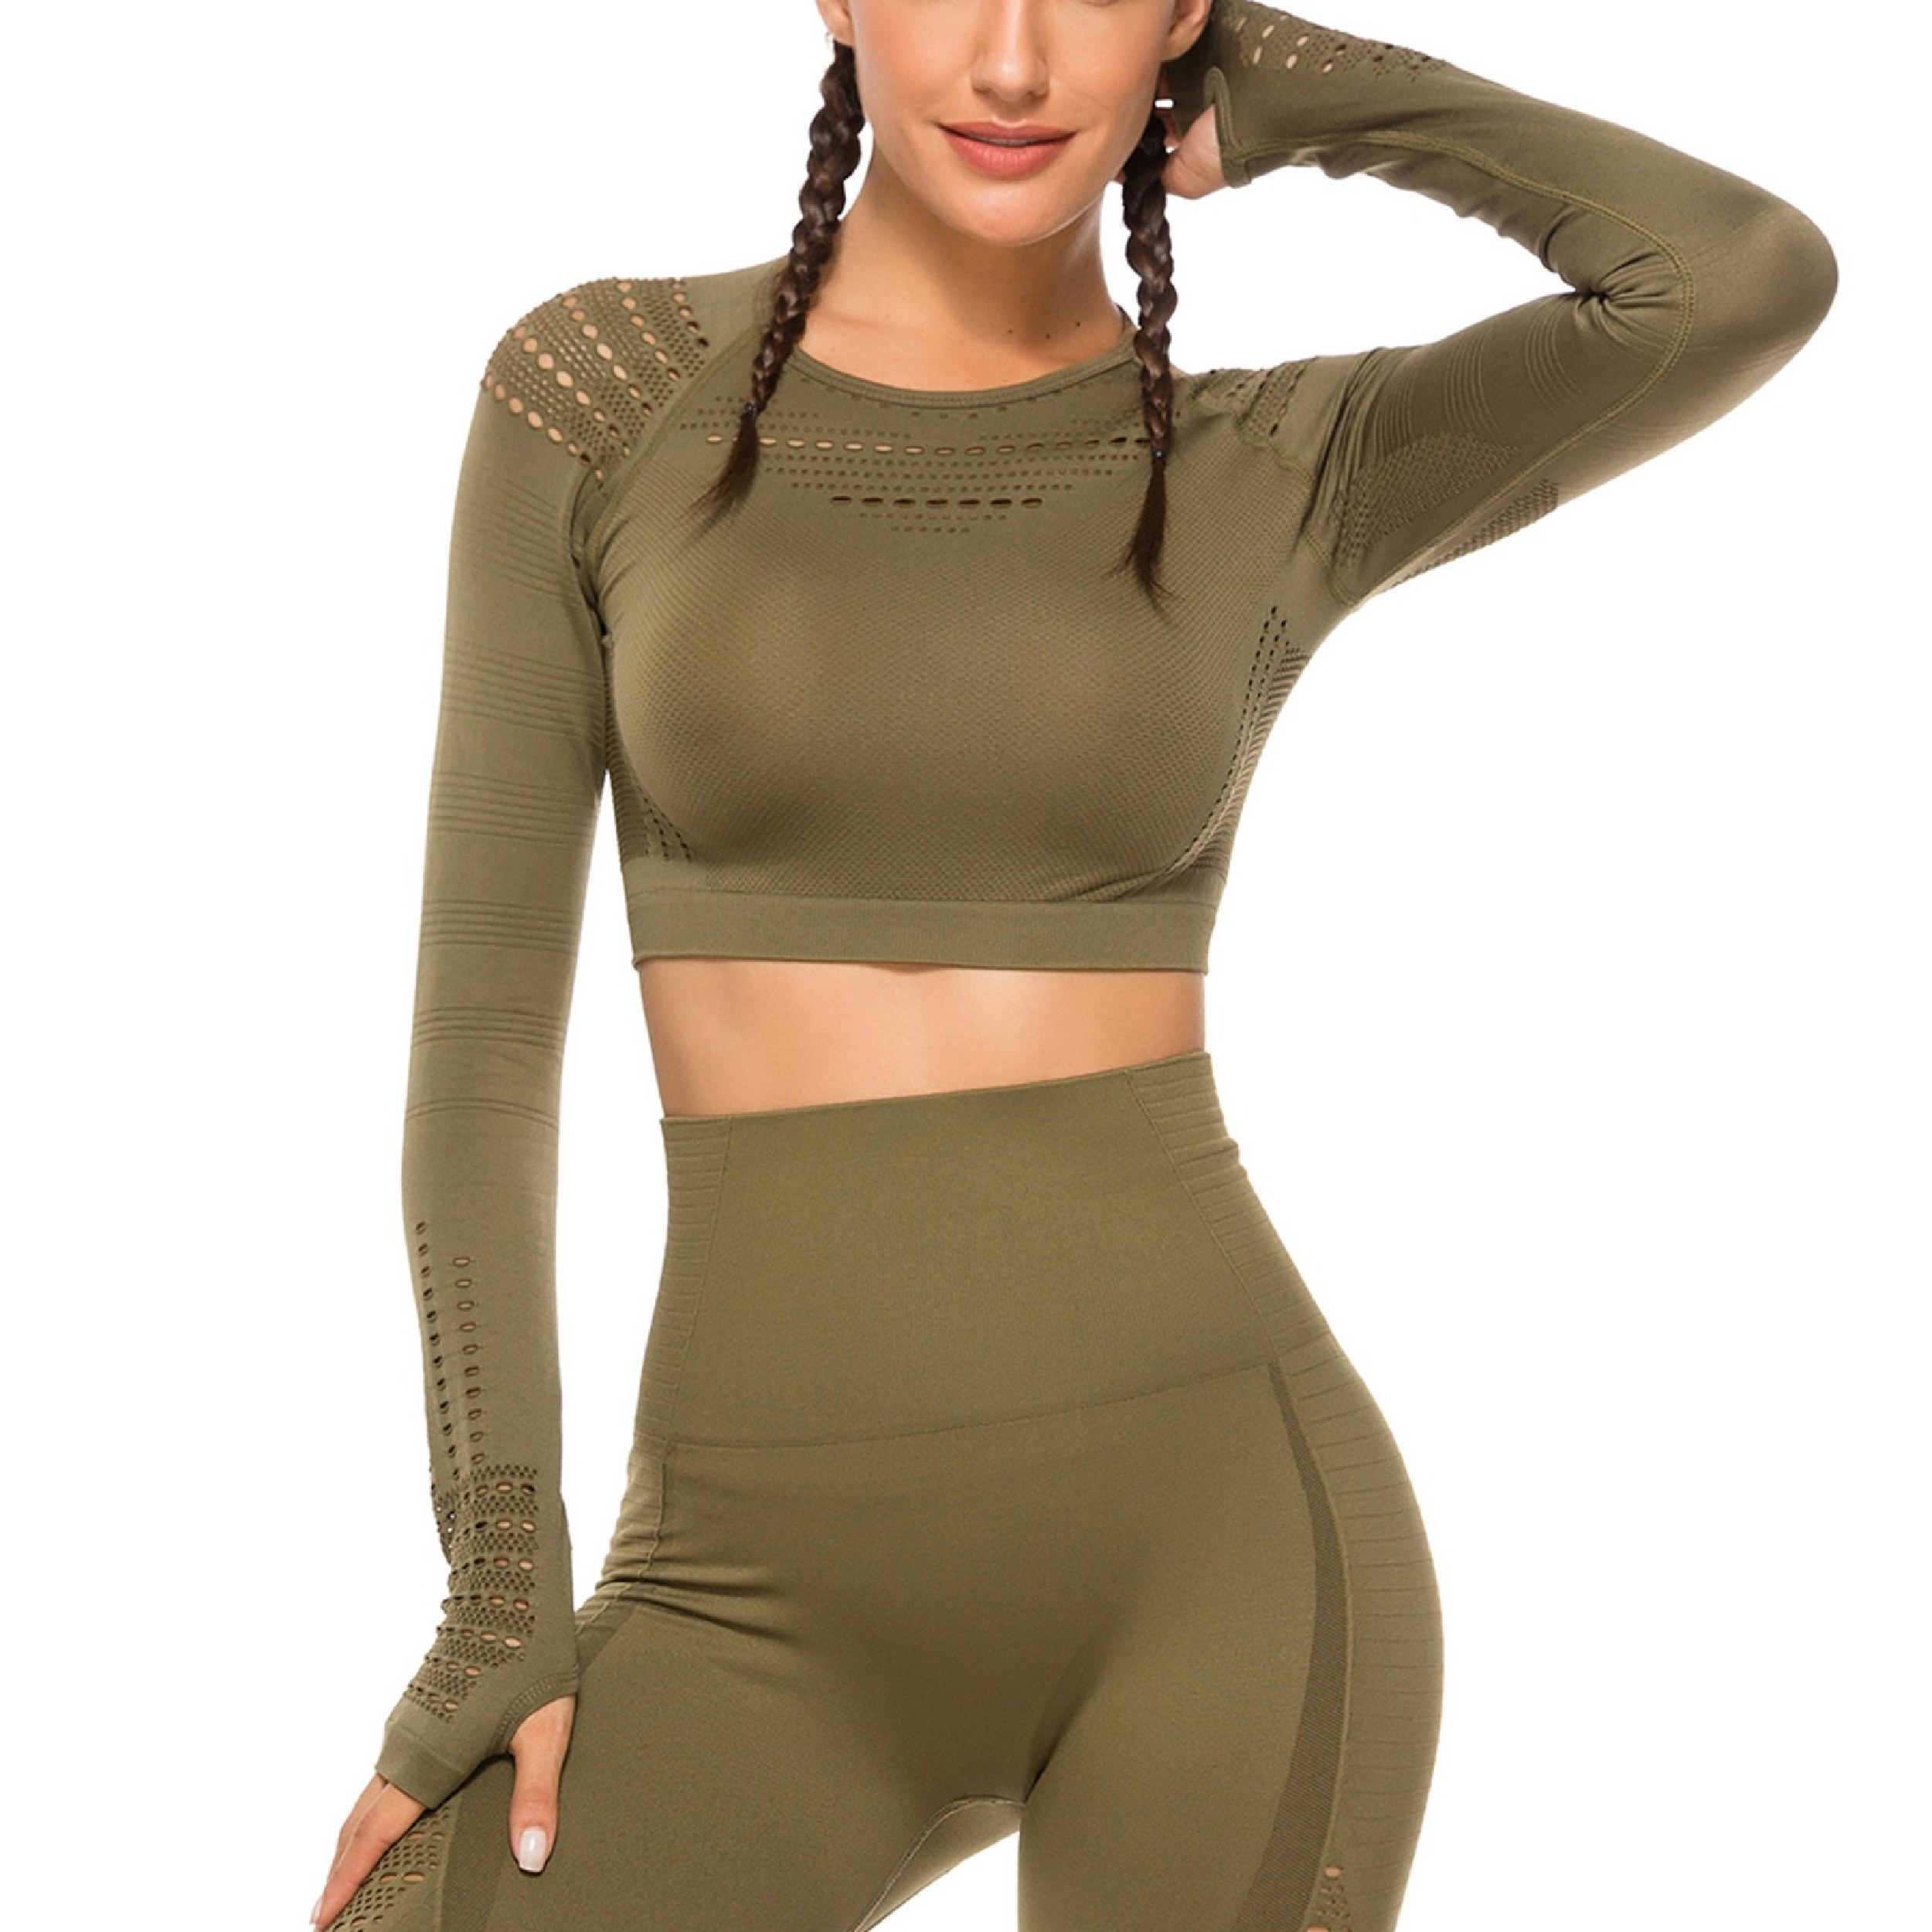 Model wearing the olive green crop top